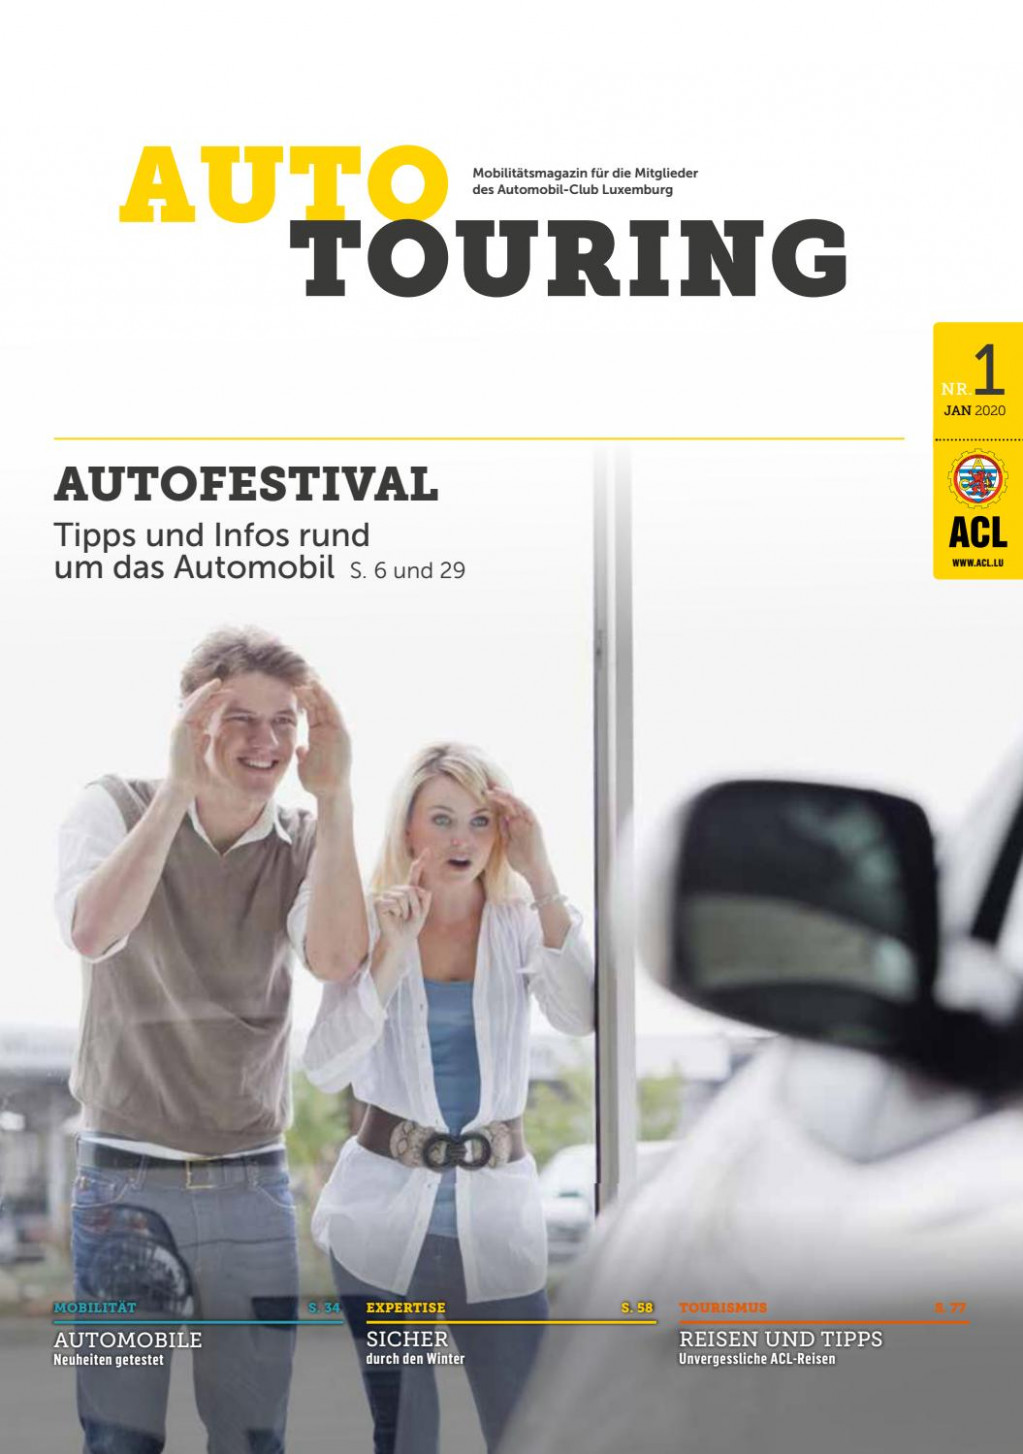 Autotouring - Januar 12 by ACL - issuu